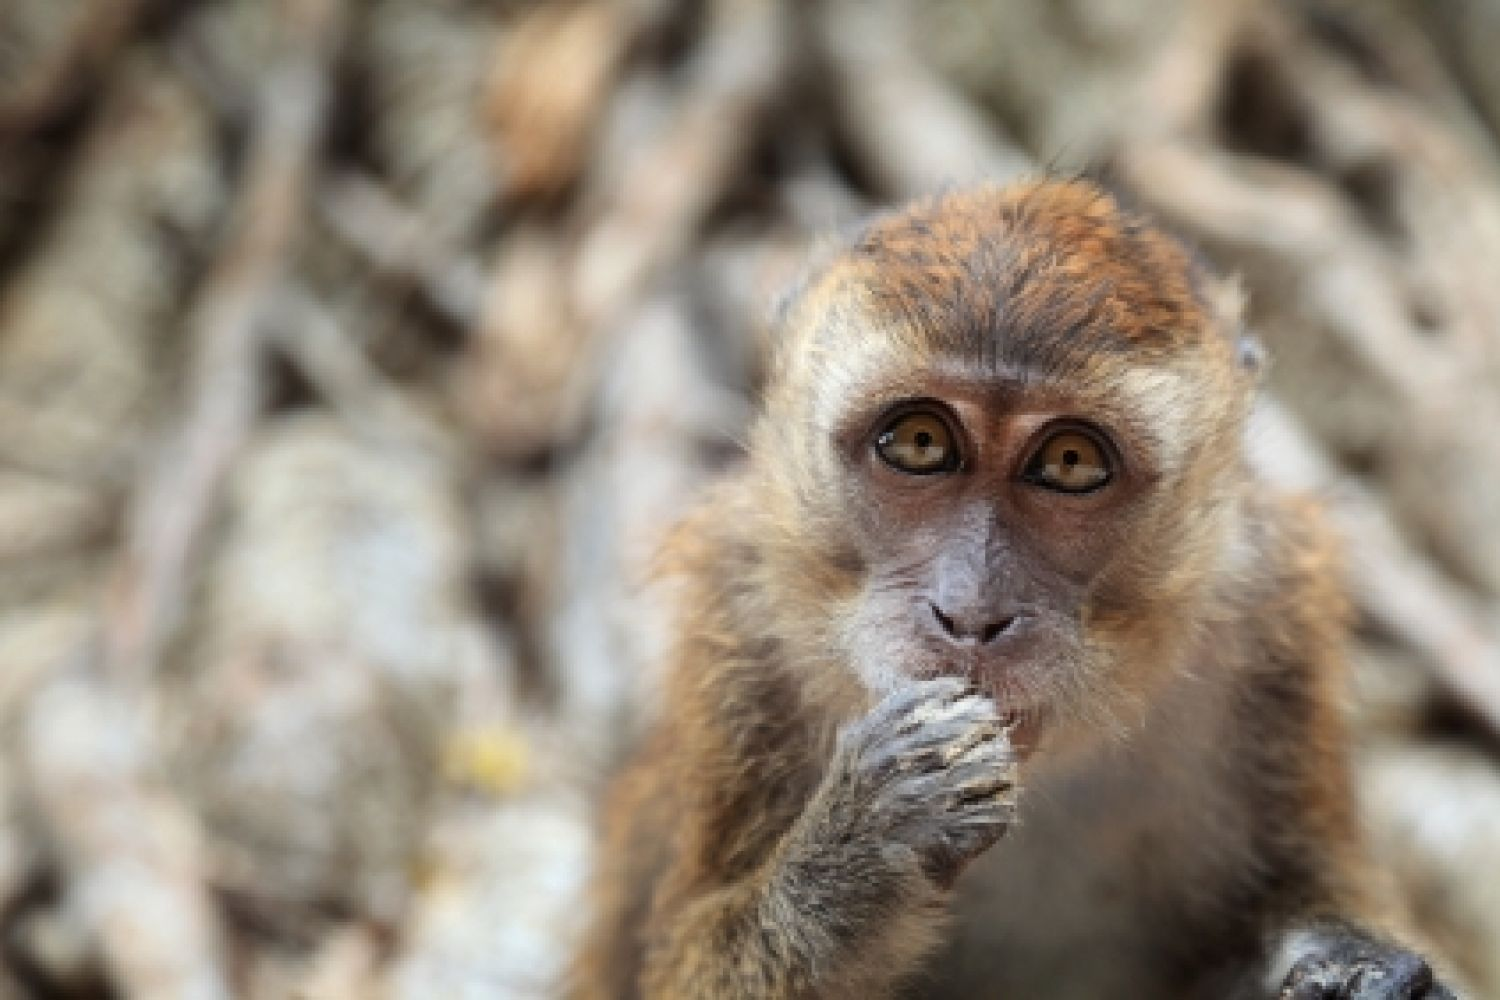 What Monkeys Teach Us about the Assumptions We Make